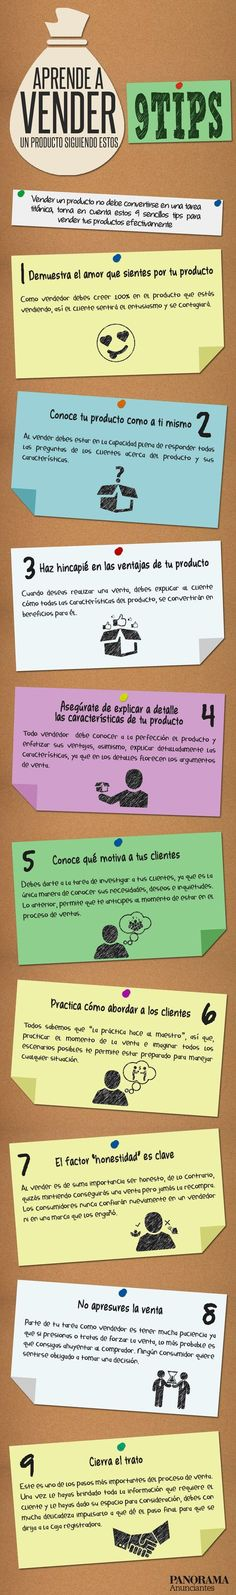 9 consejos para vender un producto - Tap the link now to Learn how I made it to 1 million in sales in 5 months with e-commerce! I'll give you the 3 advertising phases I did to make it for FREE! Sales And Marketing, Marketing And Advertising, Business Marketing, Online Marketing, Digital Marketing, Business Planning, Business Tips, Community Manager, Business Inspiration